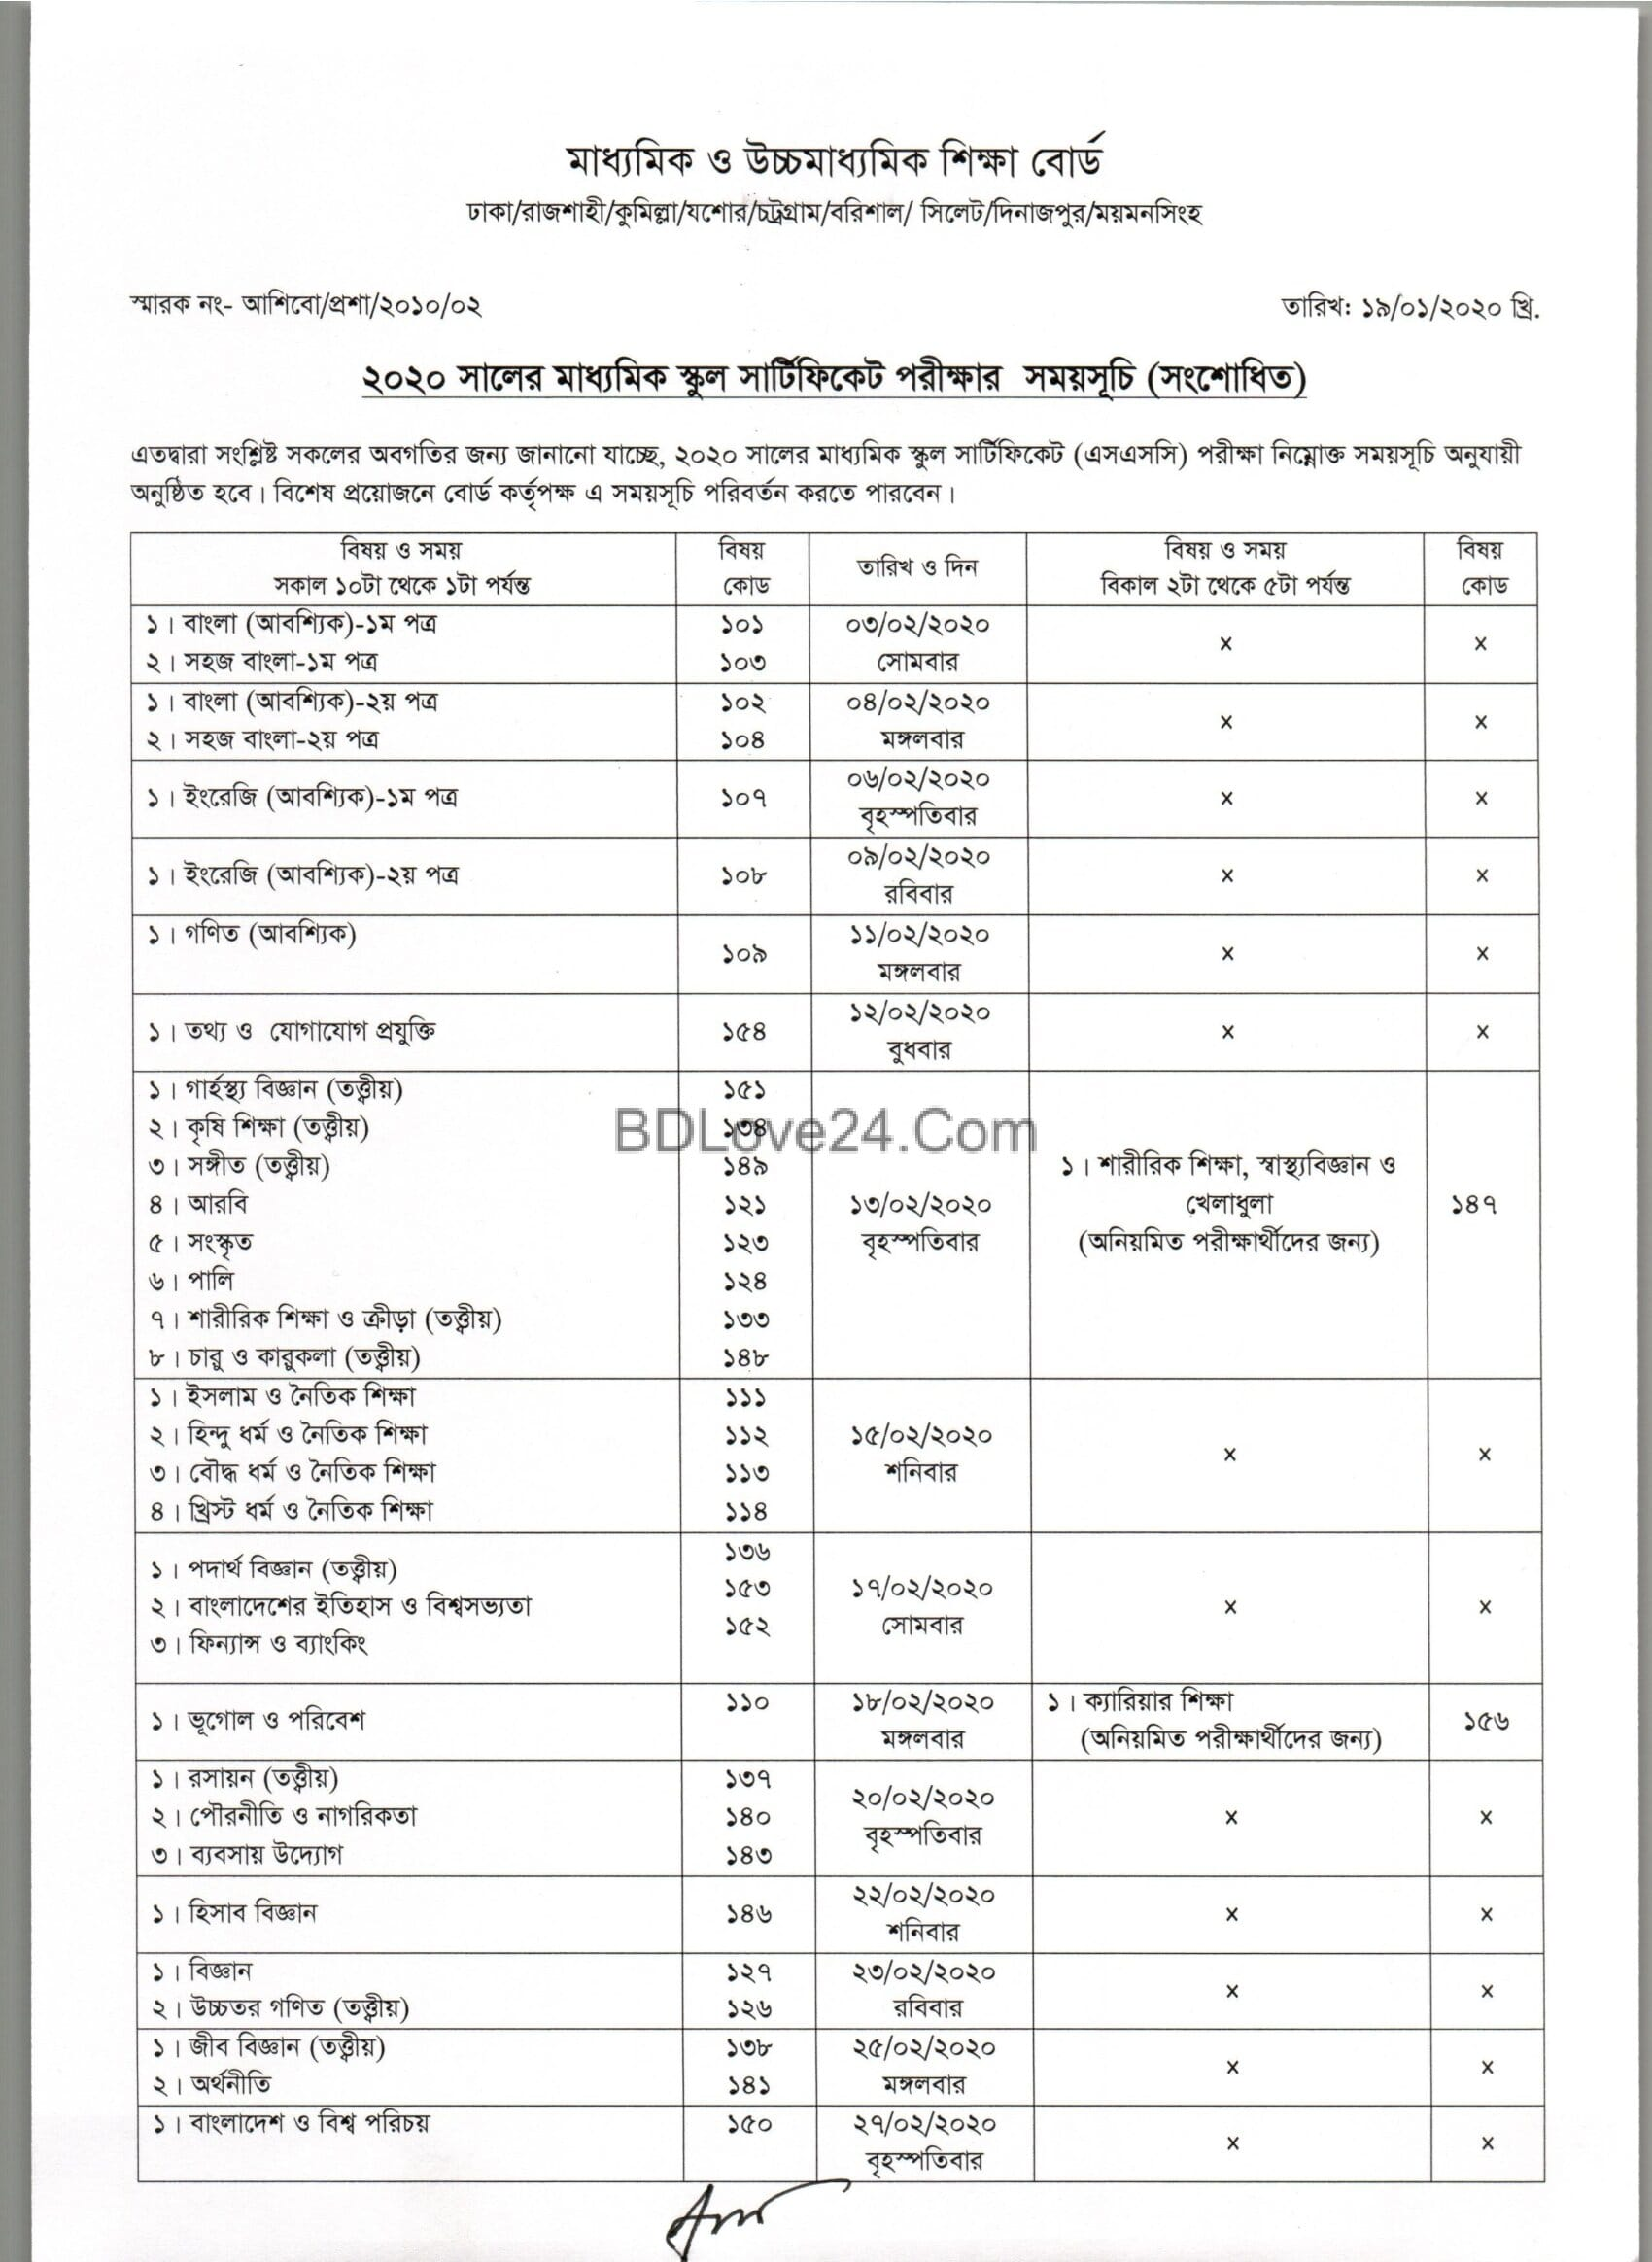 ssc rutine new 2020 0001 - SSC Exam Routine 2021 (new),Dakhil Exam Time Table 2021,SSC and Dakhil (New Routine)